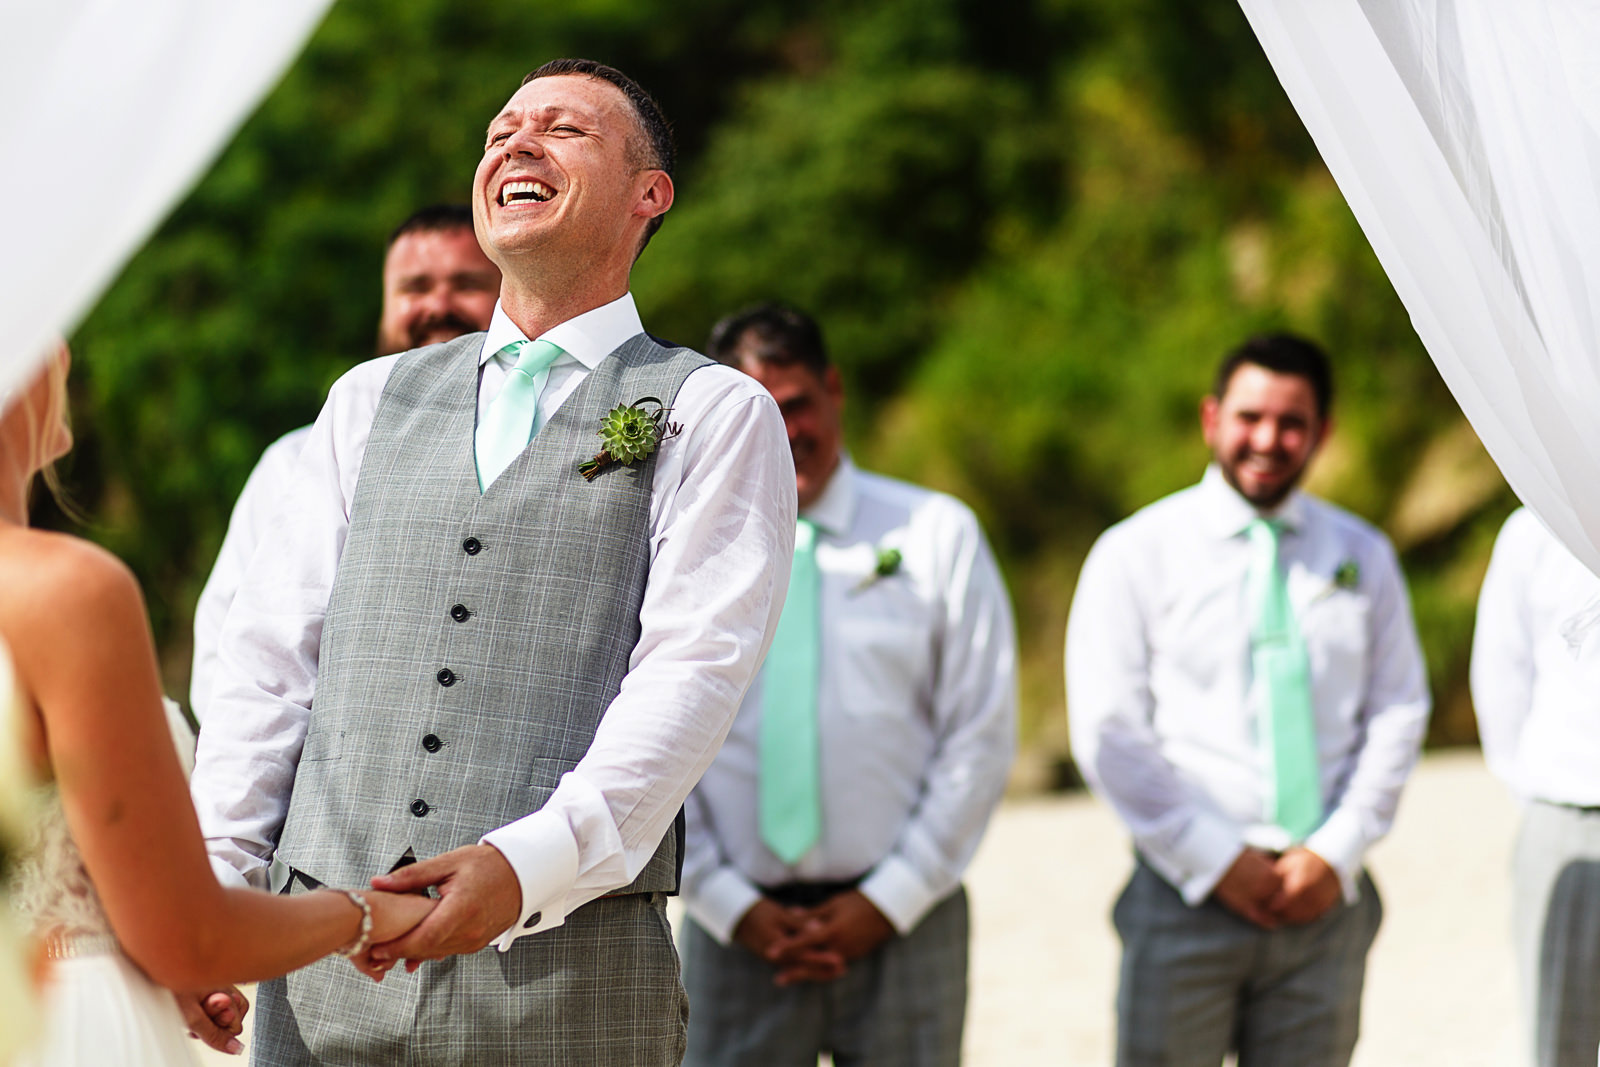 Groom laughing during his wedding ceremony